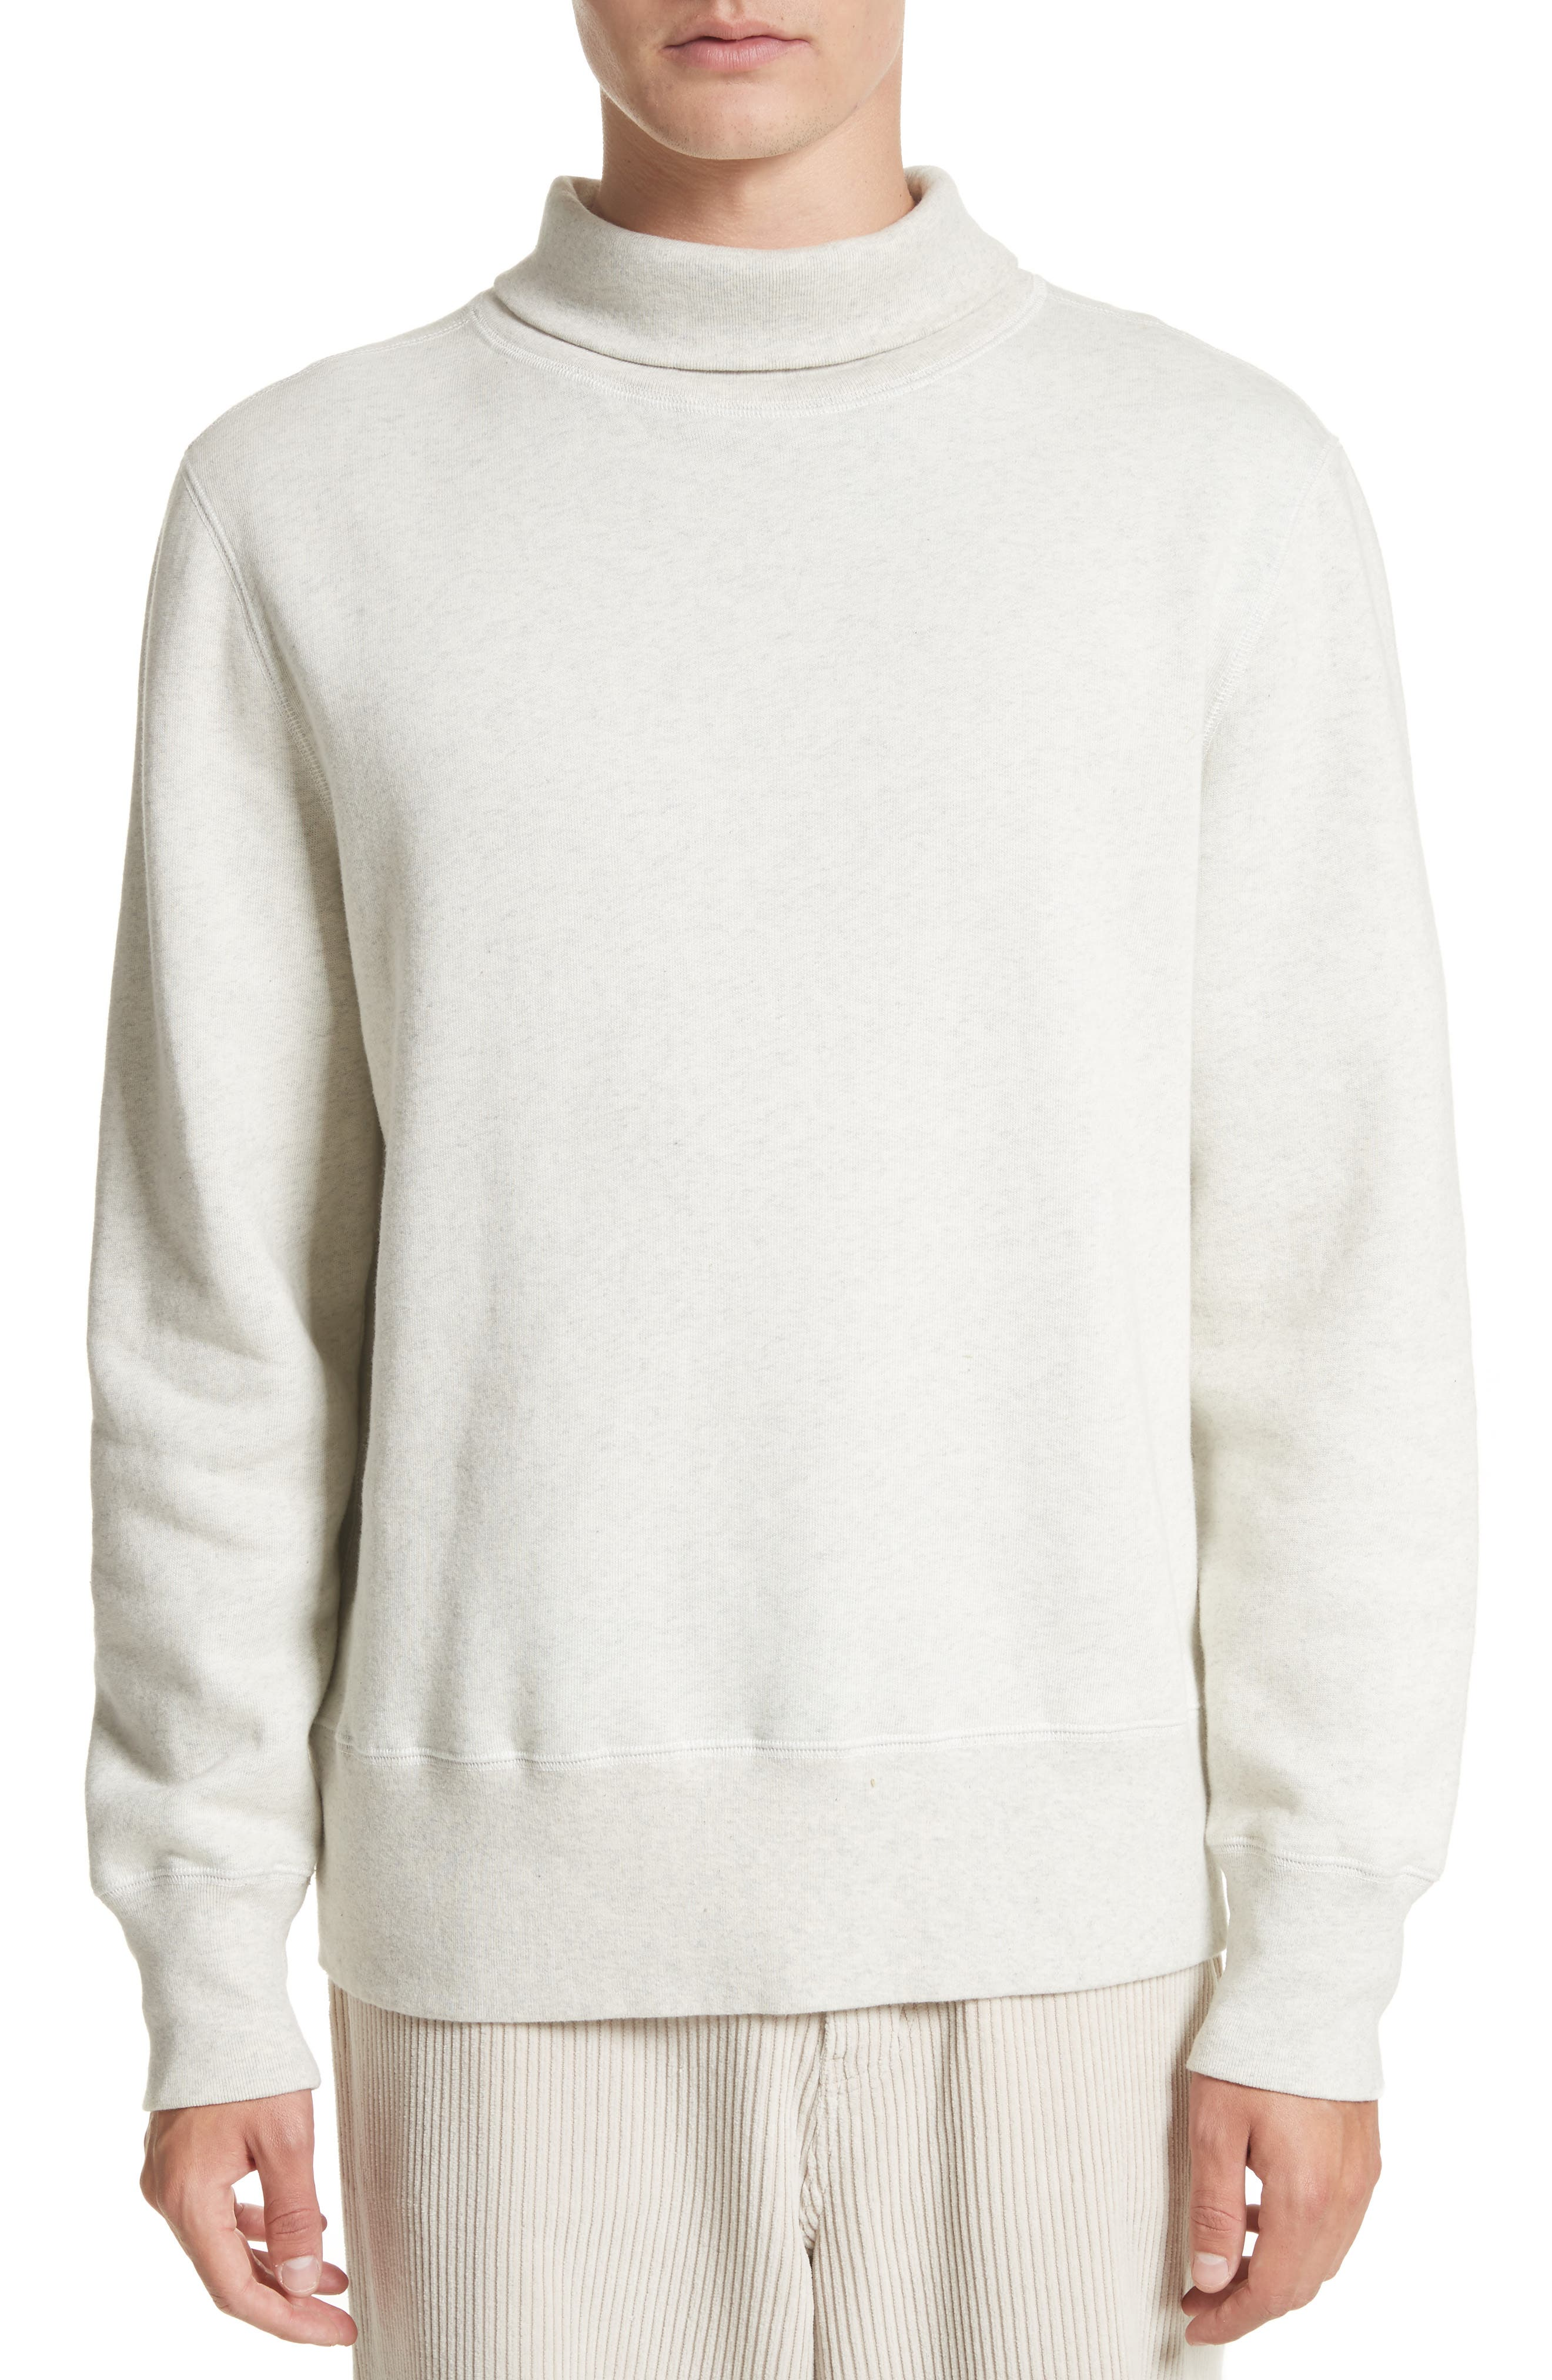 Alternate Image 1 Selected - OUR LEGACY Turtleneck Sweater